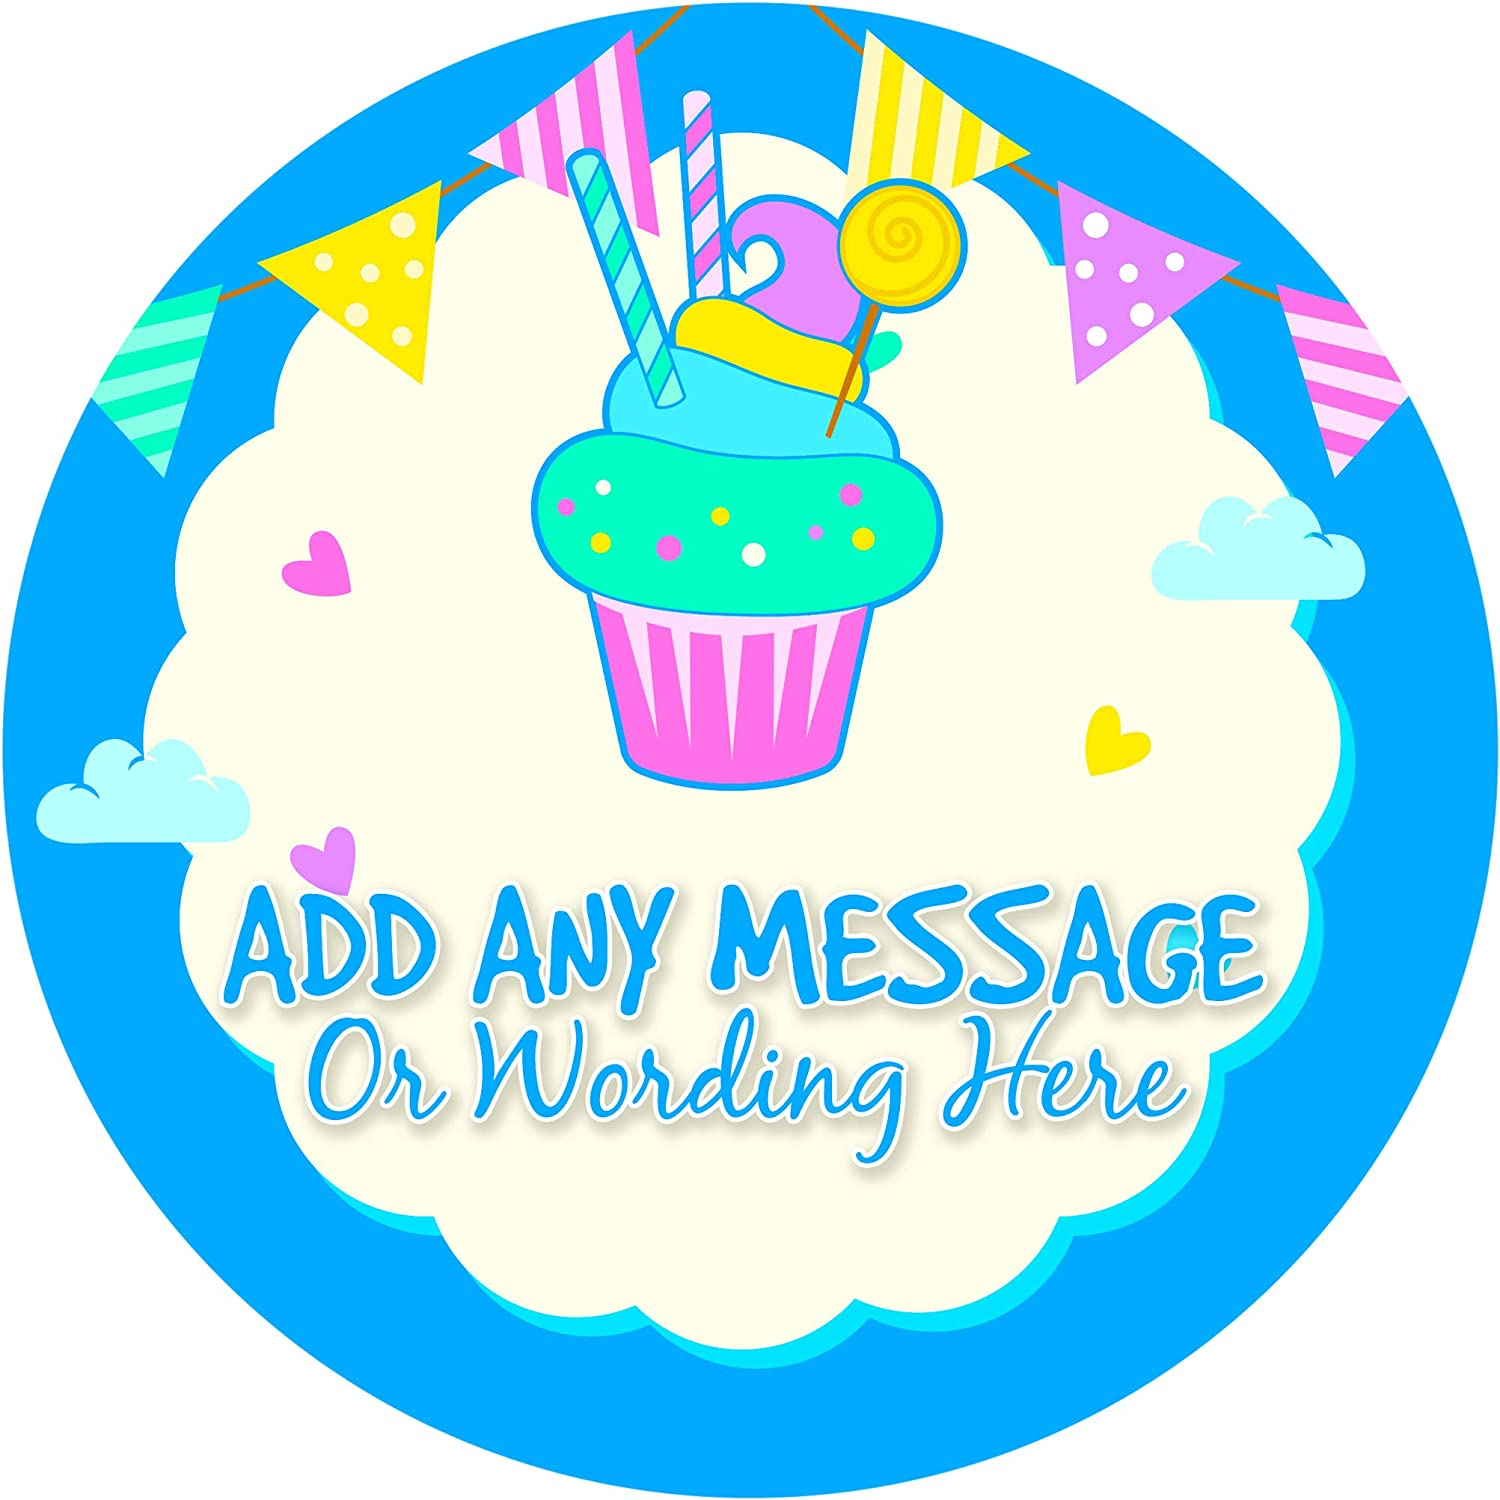 Happy birthday party sticker labels 24 stickers 1 8 inch each personalized seals ideal for party bags sweet cones favours jars presentations